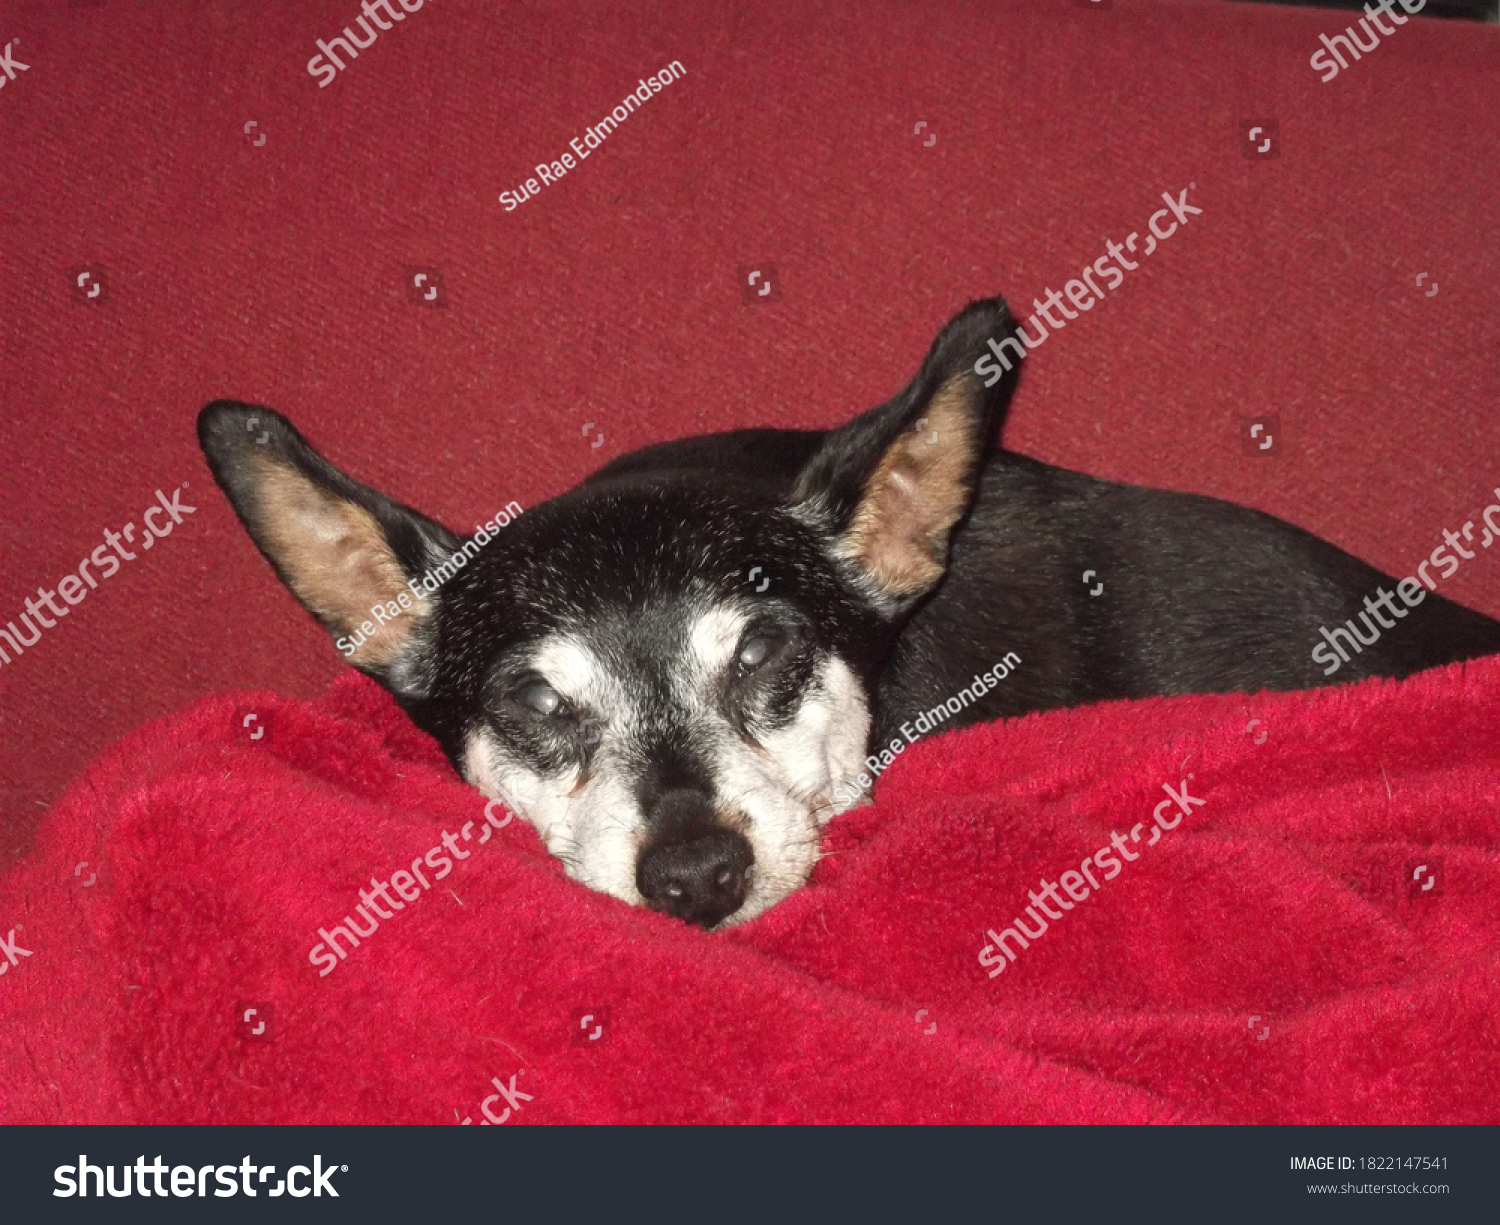 stock-photo-close-up-of-an-old-dog-with-